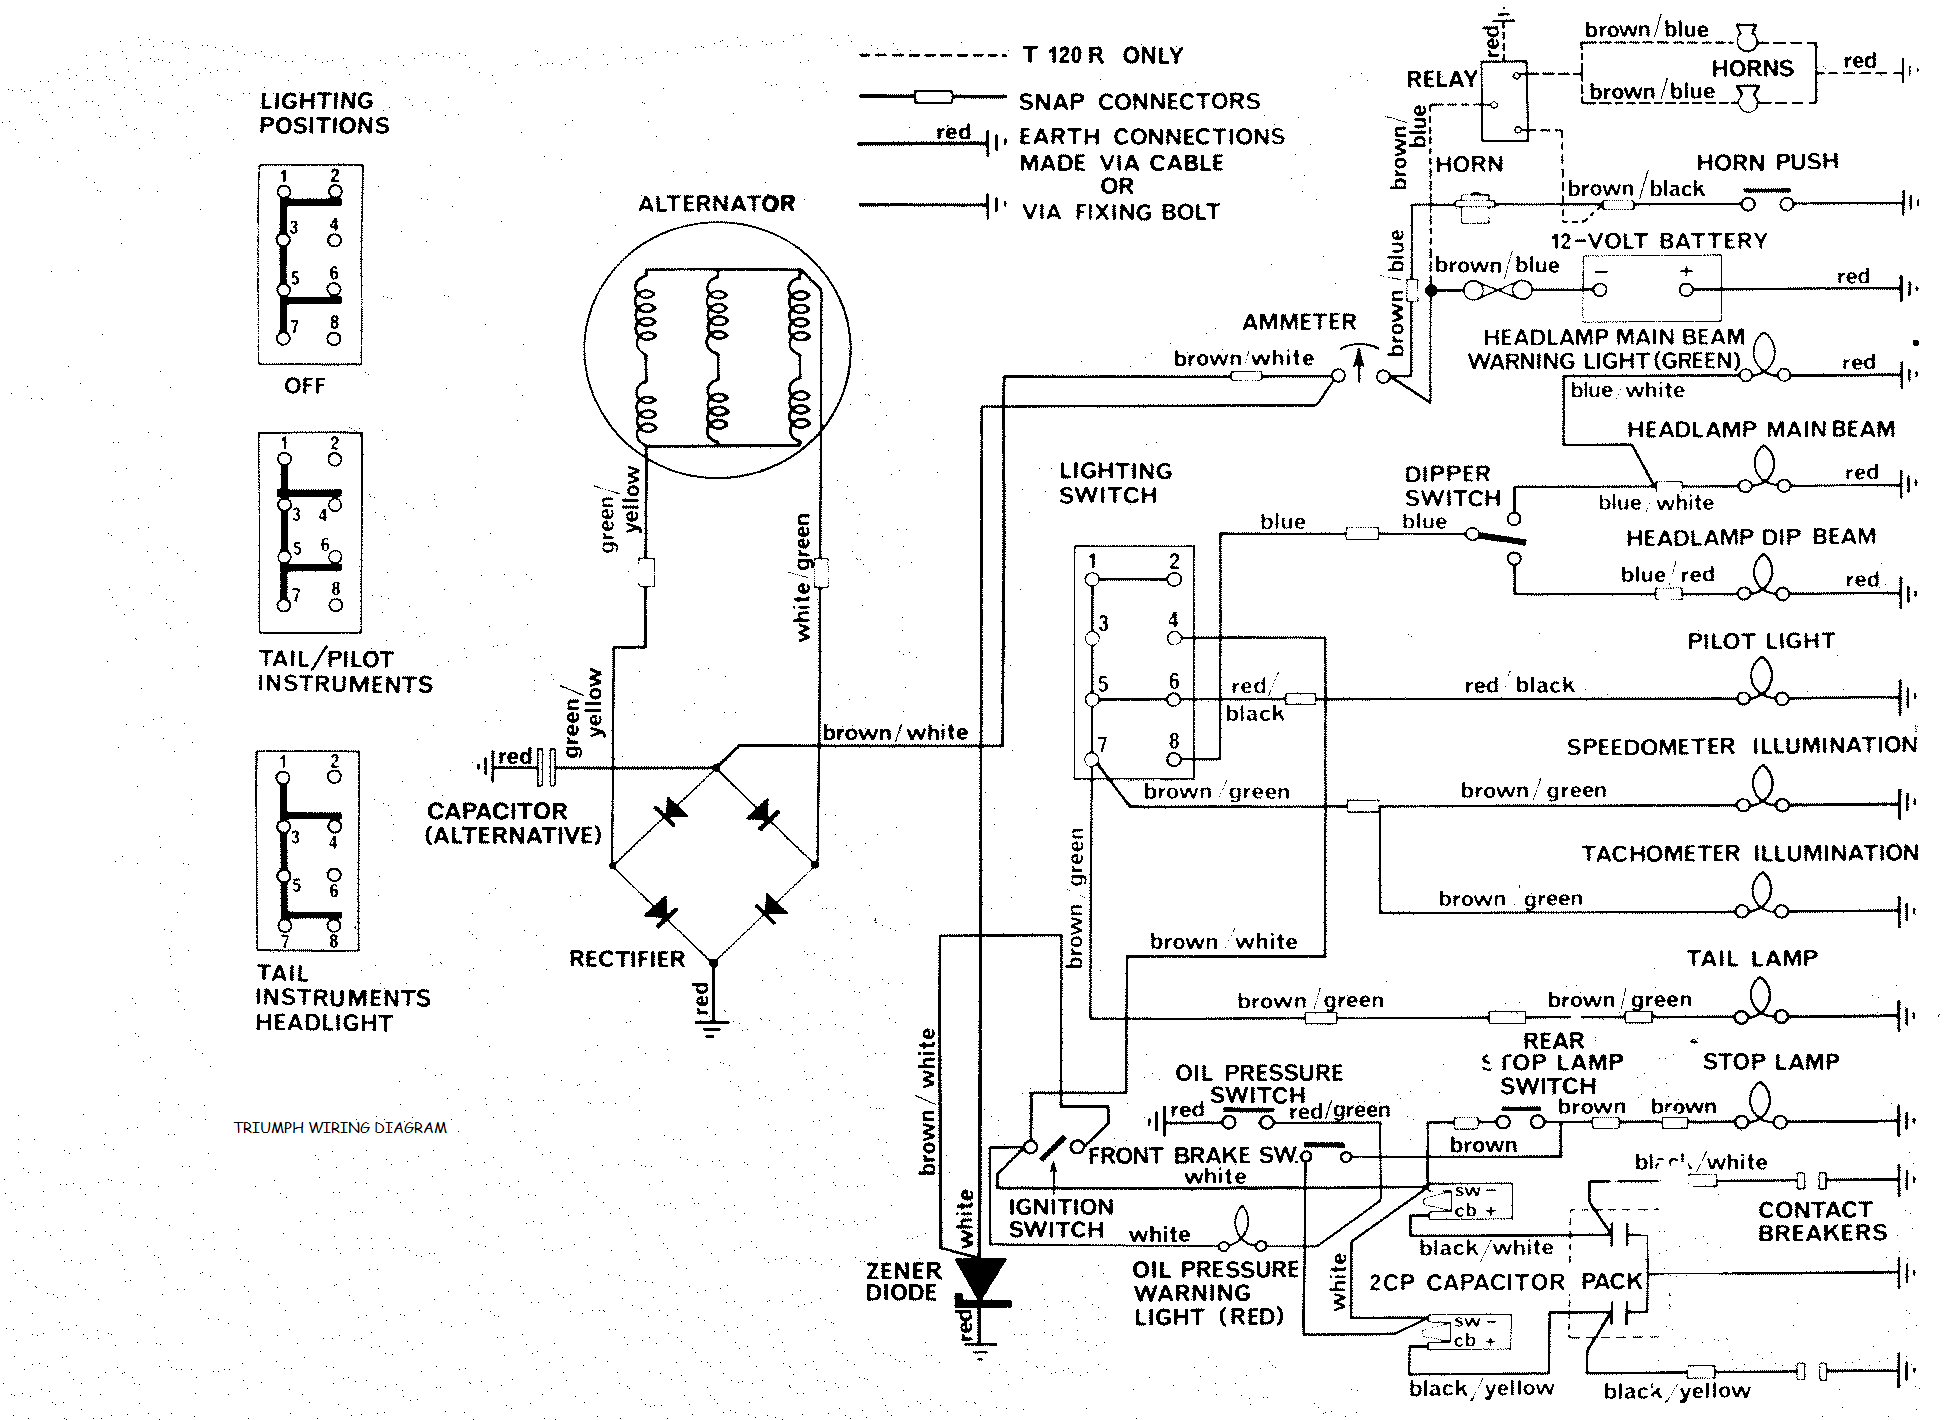 Triumph Wiring Diagrams Untitled Document Diagram For Daytona 600 Bonneville Image Automotive On